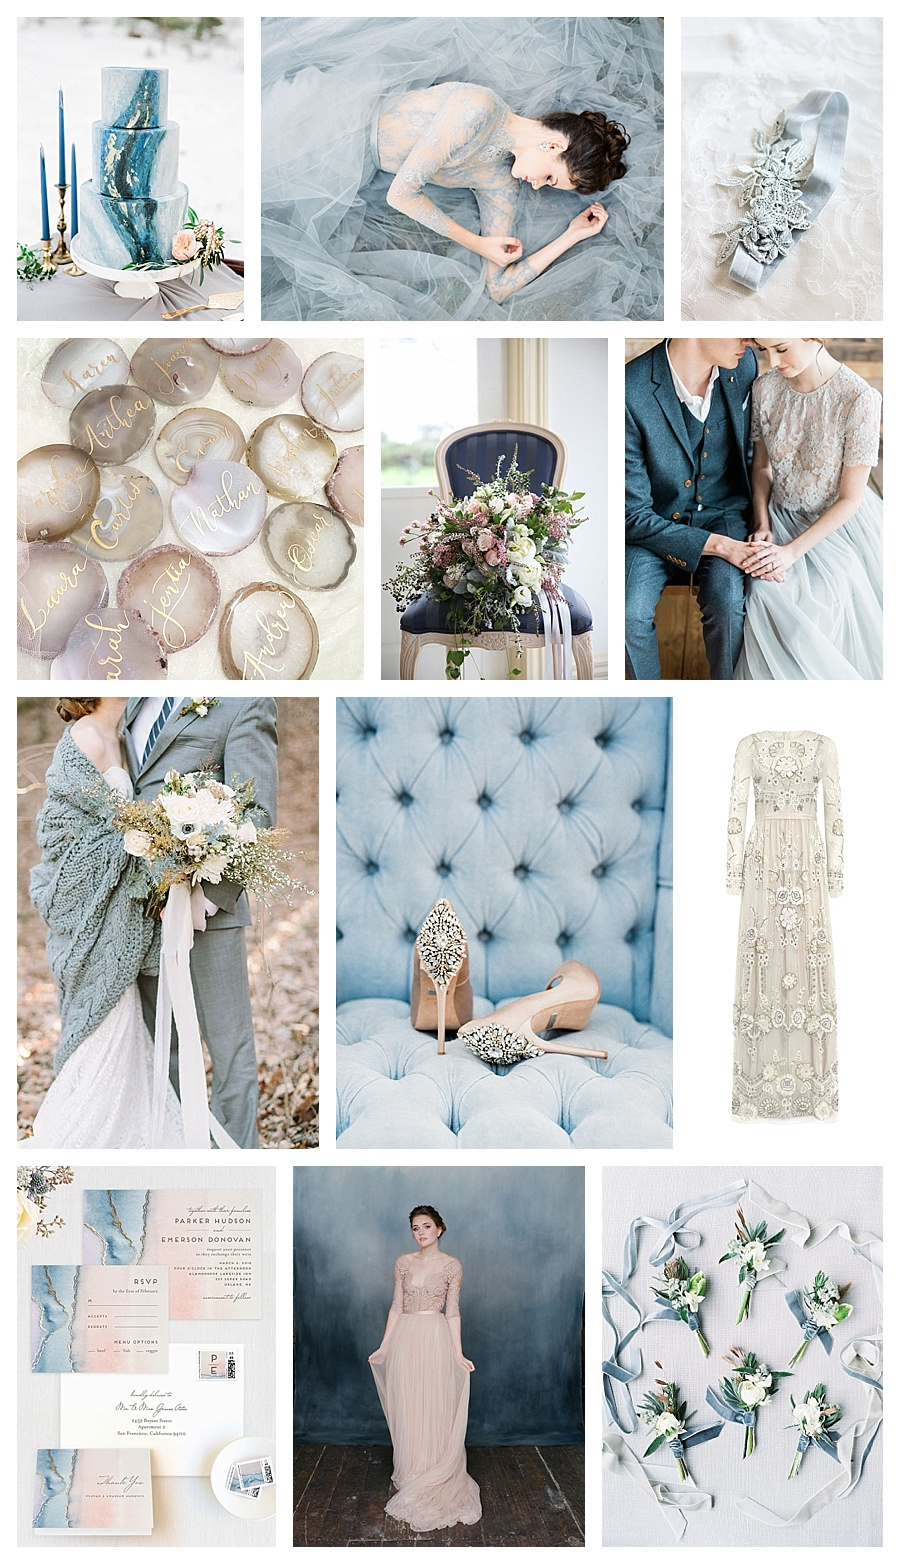 rose quartz and serenity inspired winter wedding photo shoot the loft photo studio_0161.jpg